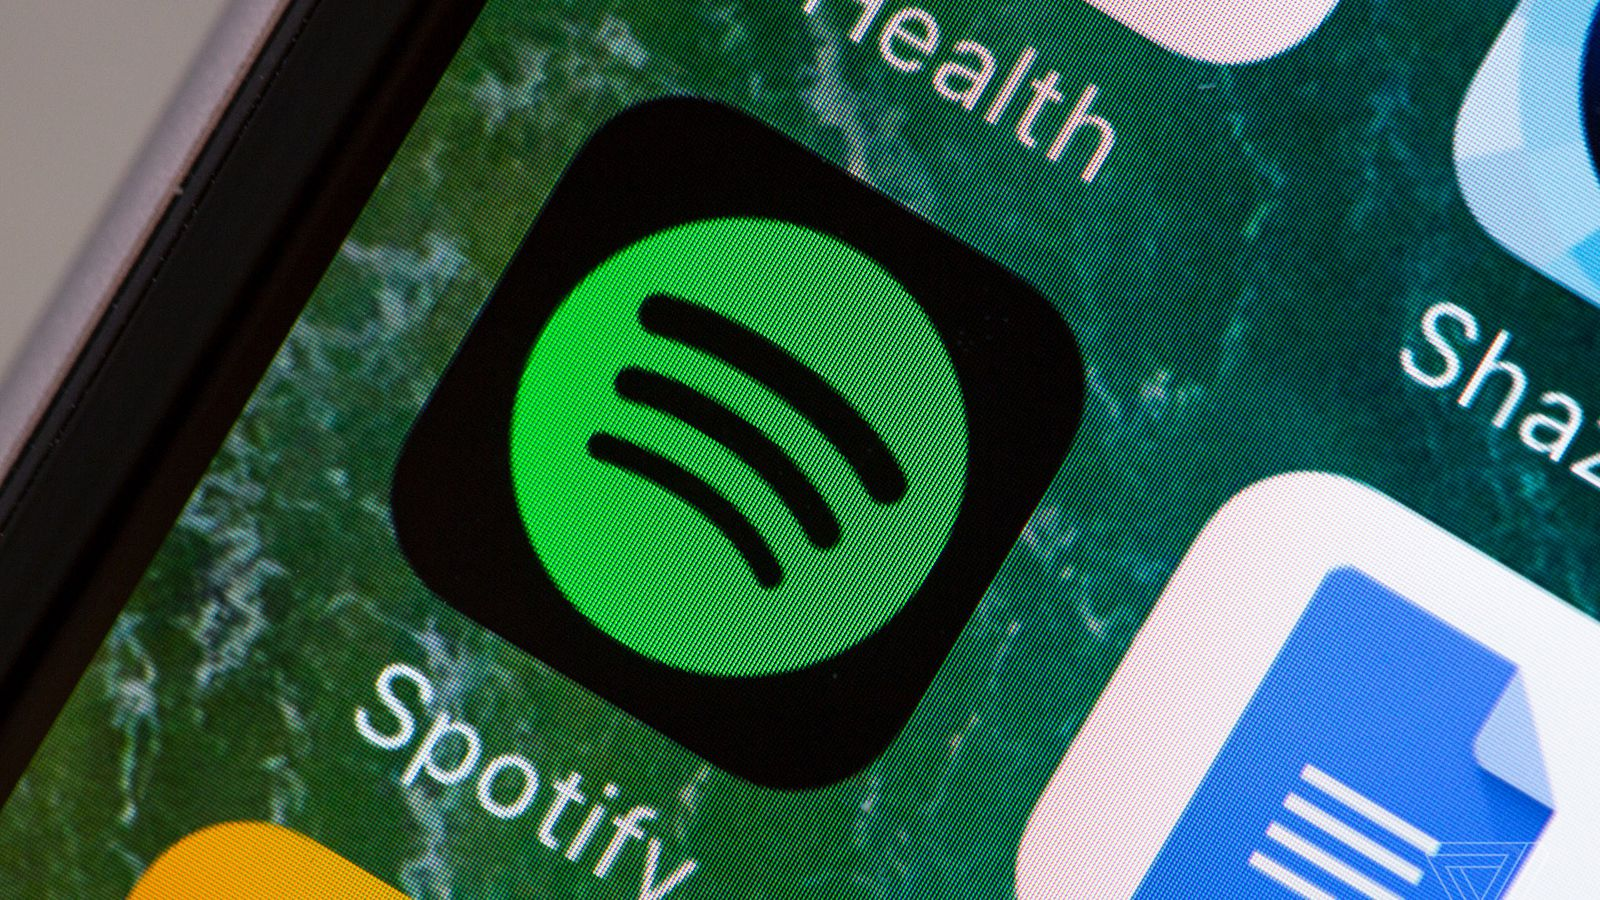 Spotify is Testing 'Sponsored Songs' in Playlists